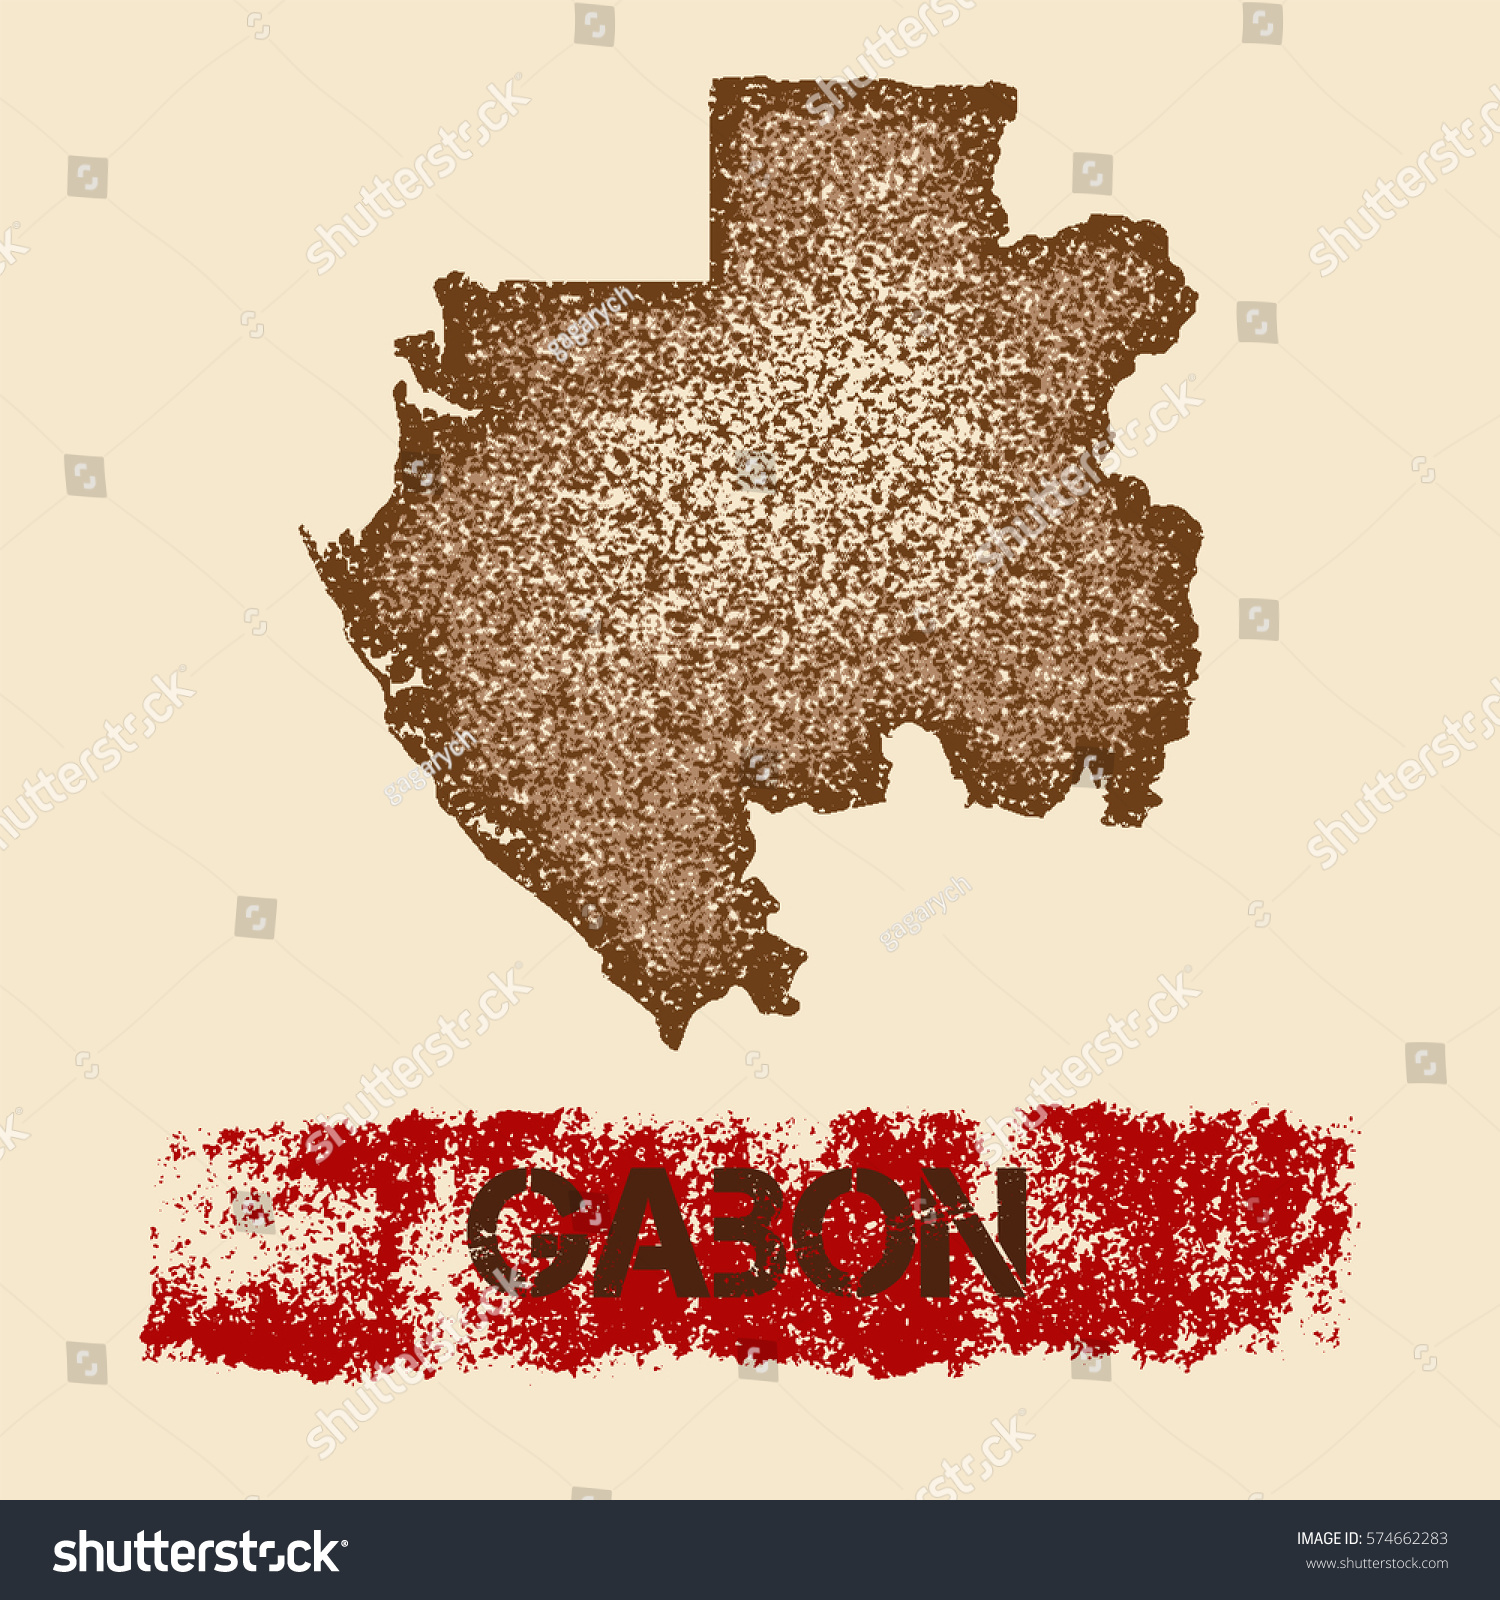 Gabon Distressed Map Grunge Patriotic Poster Stock Vector - Gabon blank map